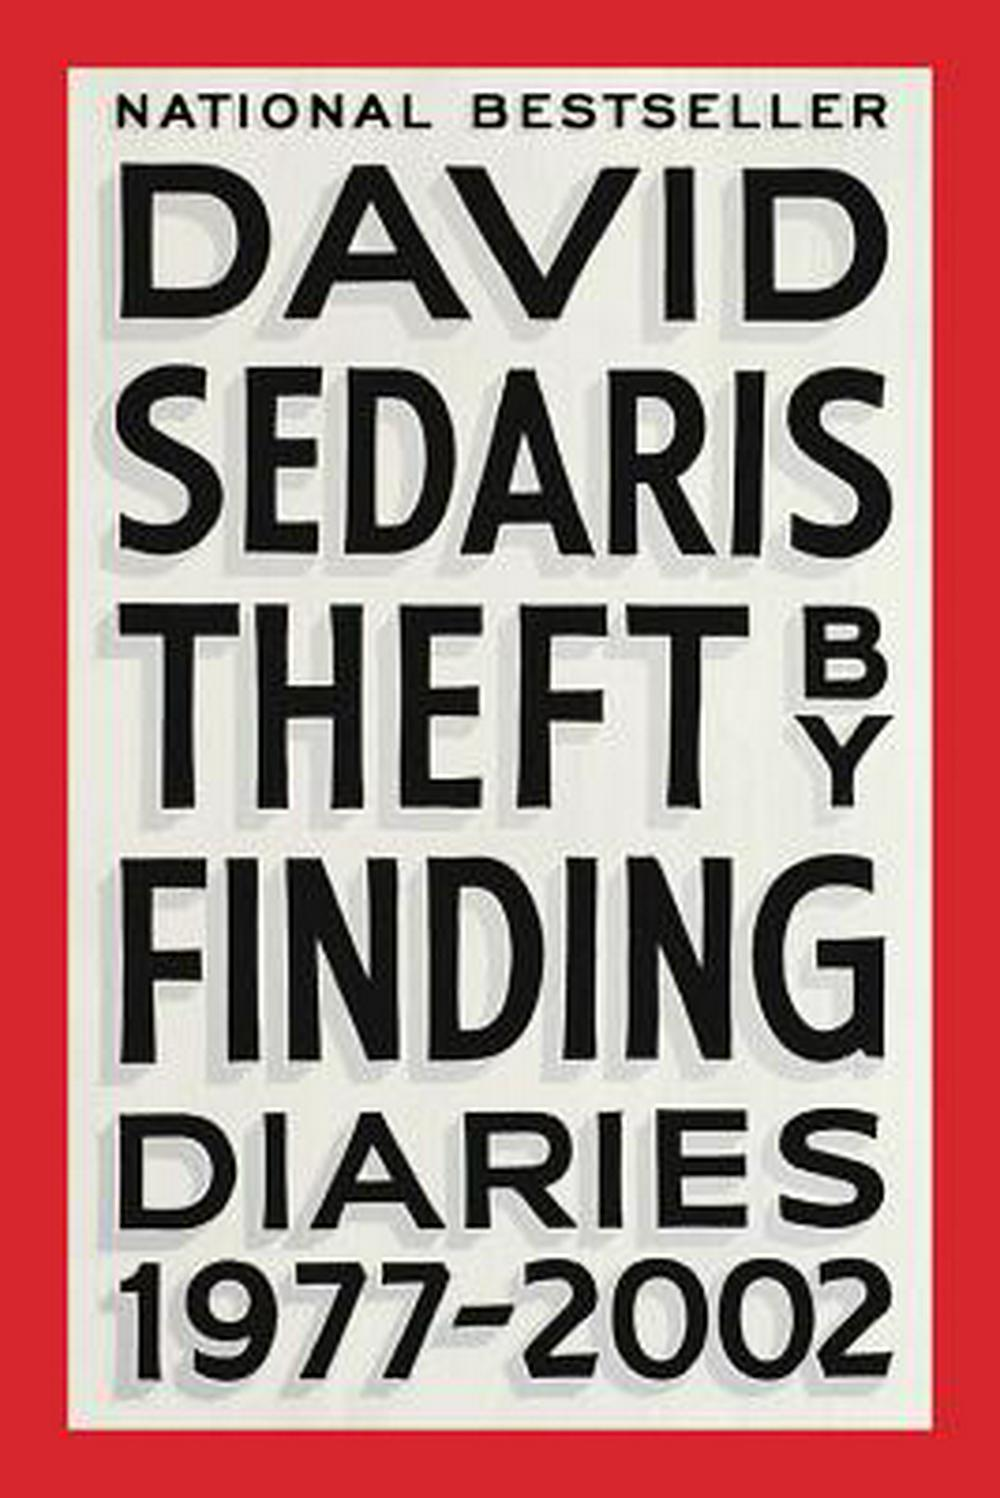 Theft by Finding: Diaries (1977-2002) by David Sedaris, ISBN: 9780316552462